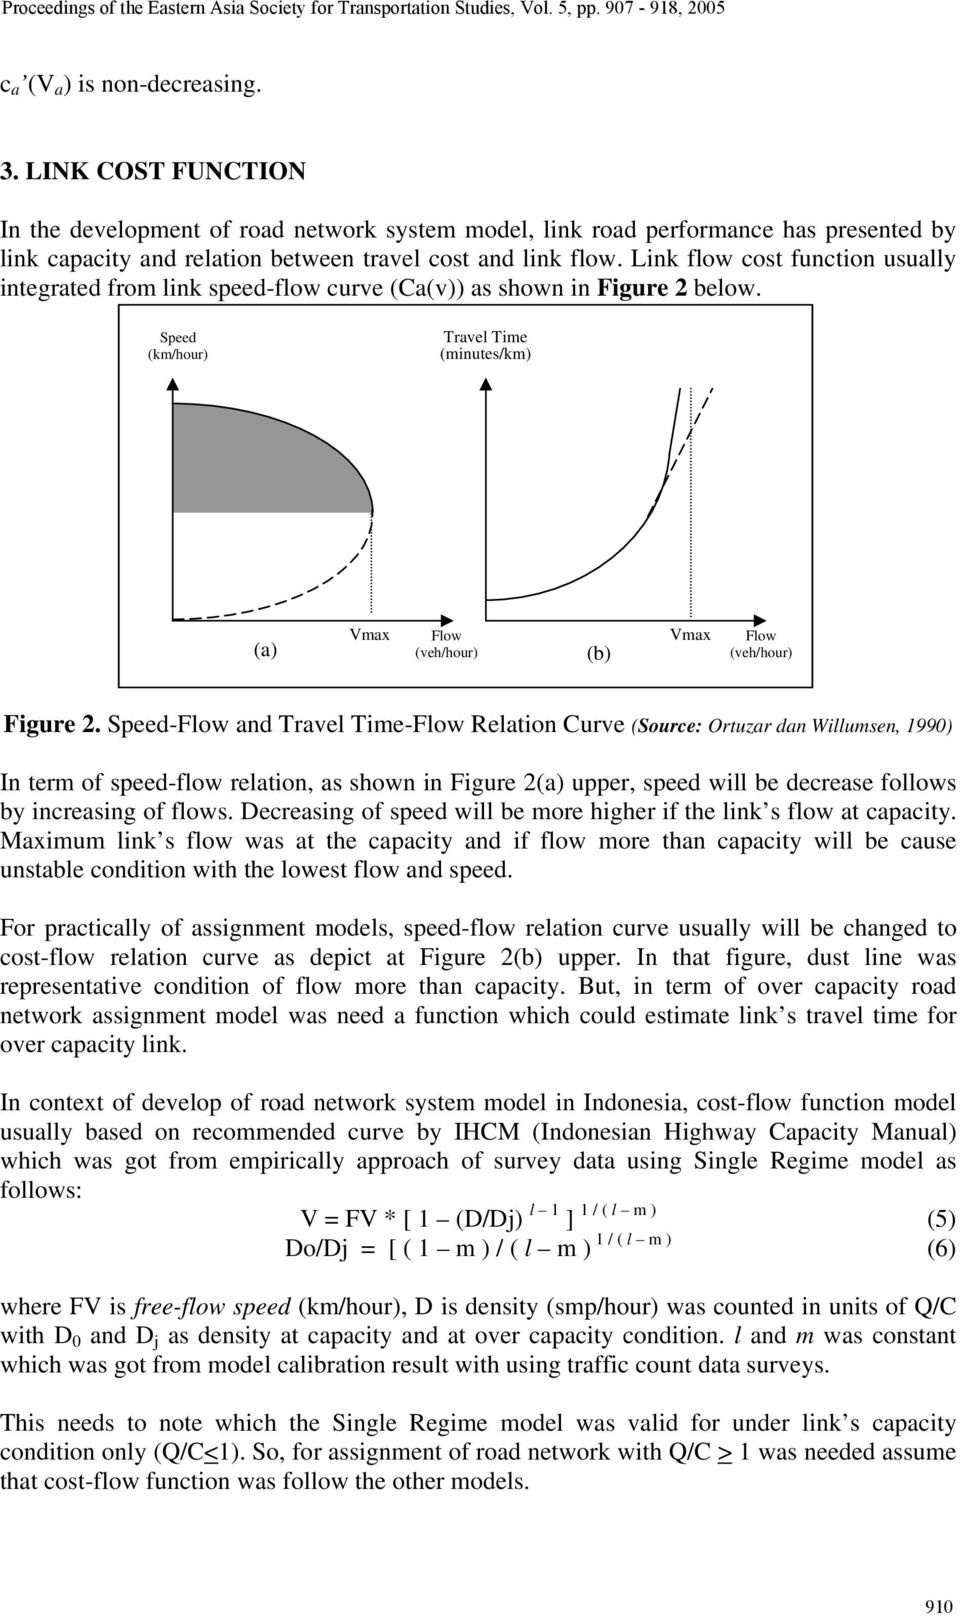 Link flow cost function usually integrated from link speed-flow curve (Ca(v)) as shown in Figure 2 below.